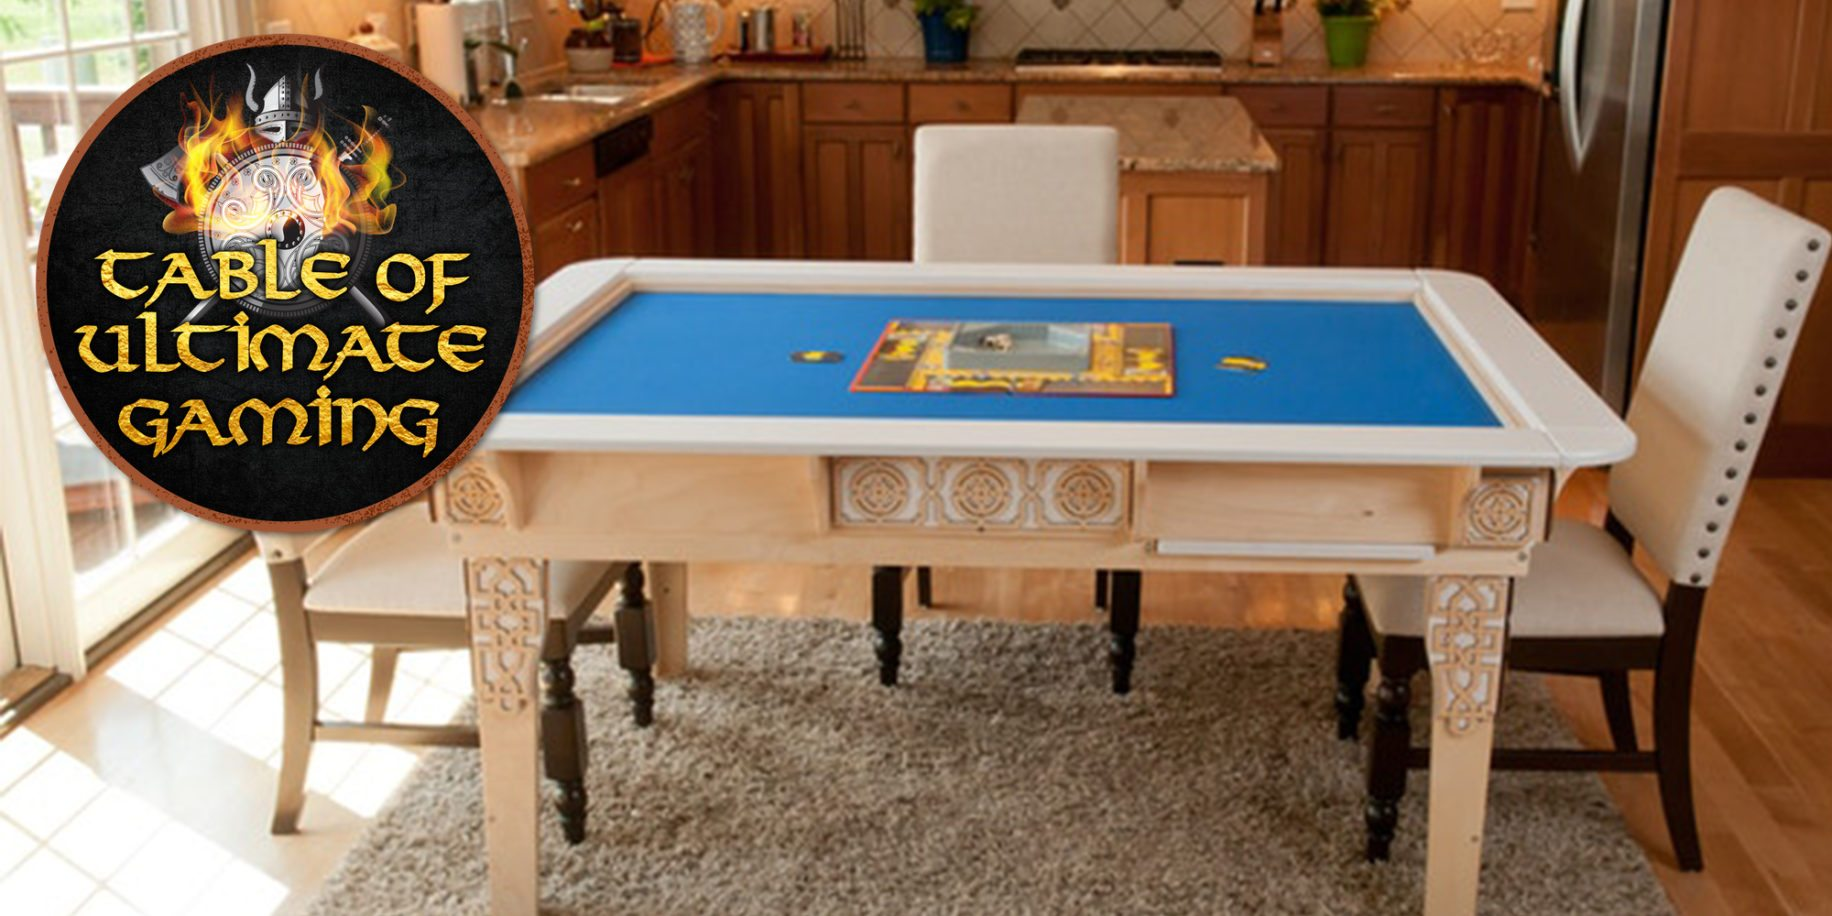 The Table of Ultimate Gaming Launches on Kickstarter